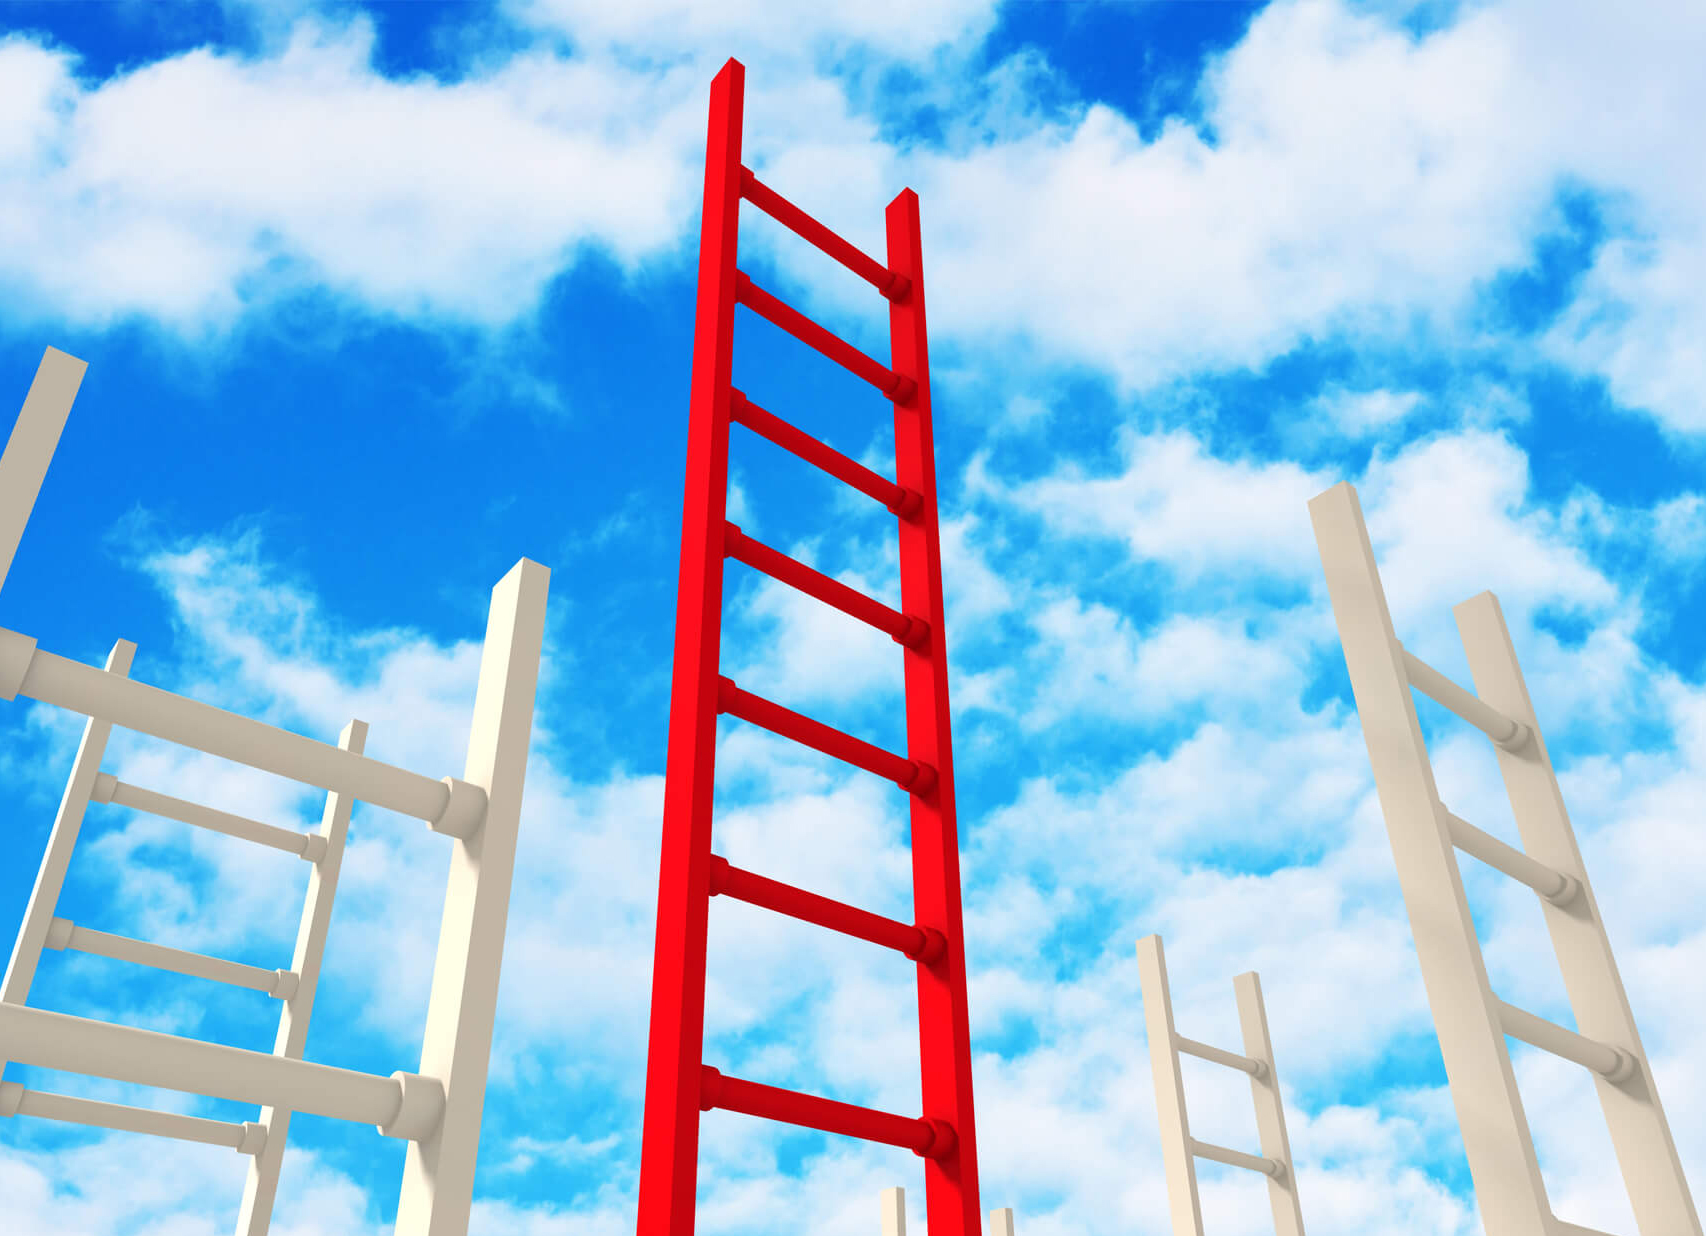 Ladders in Marketing